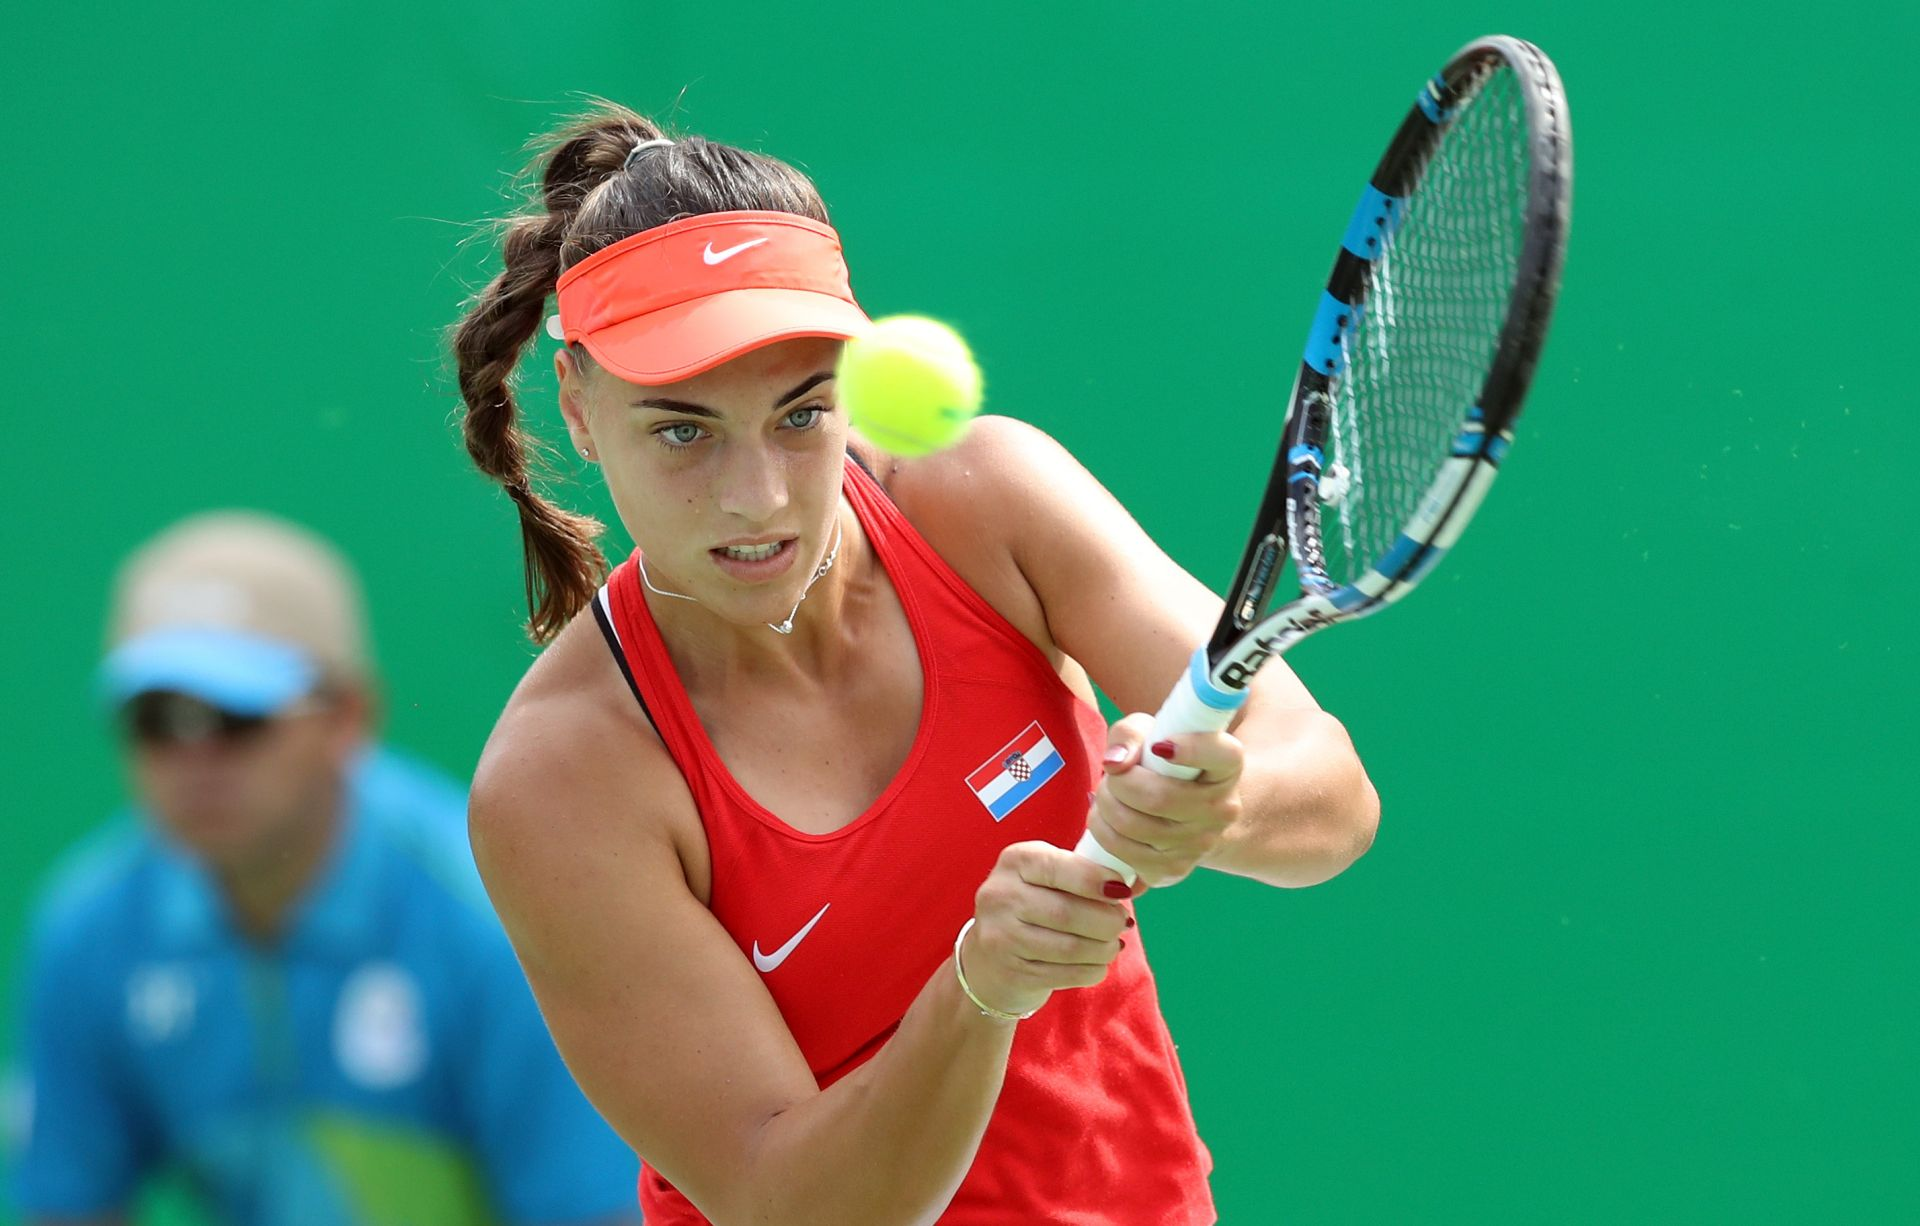 WTA New Haven: Poraz Ane Konjuh